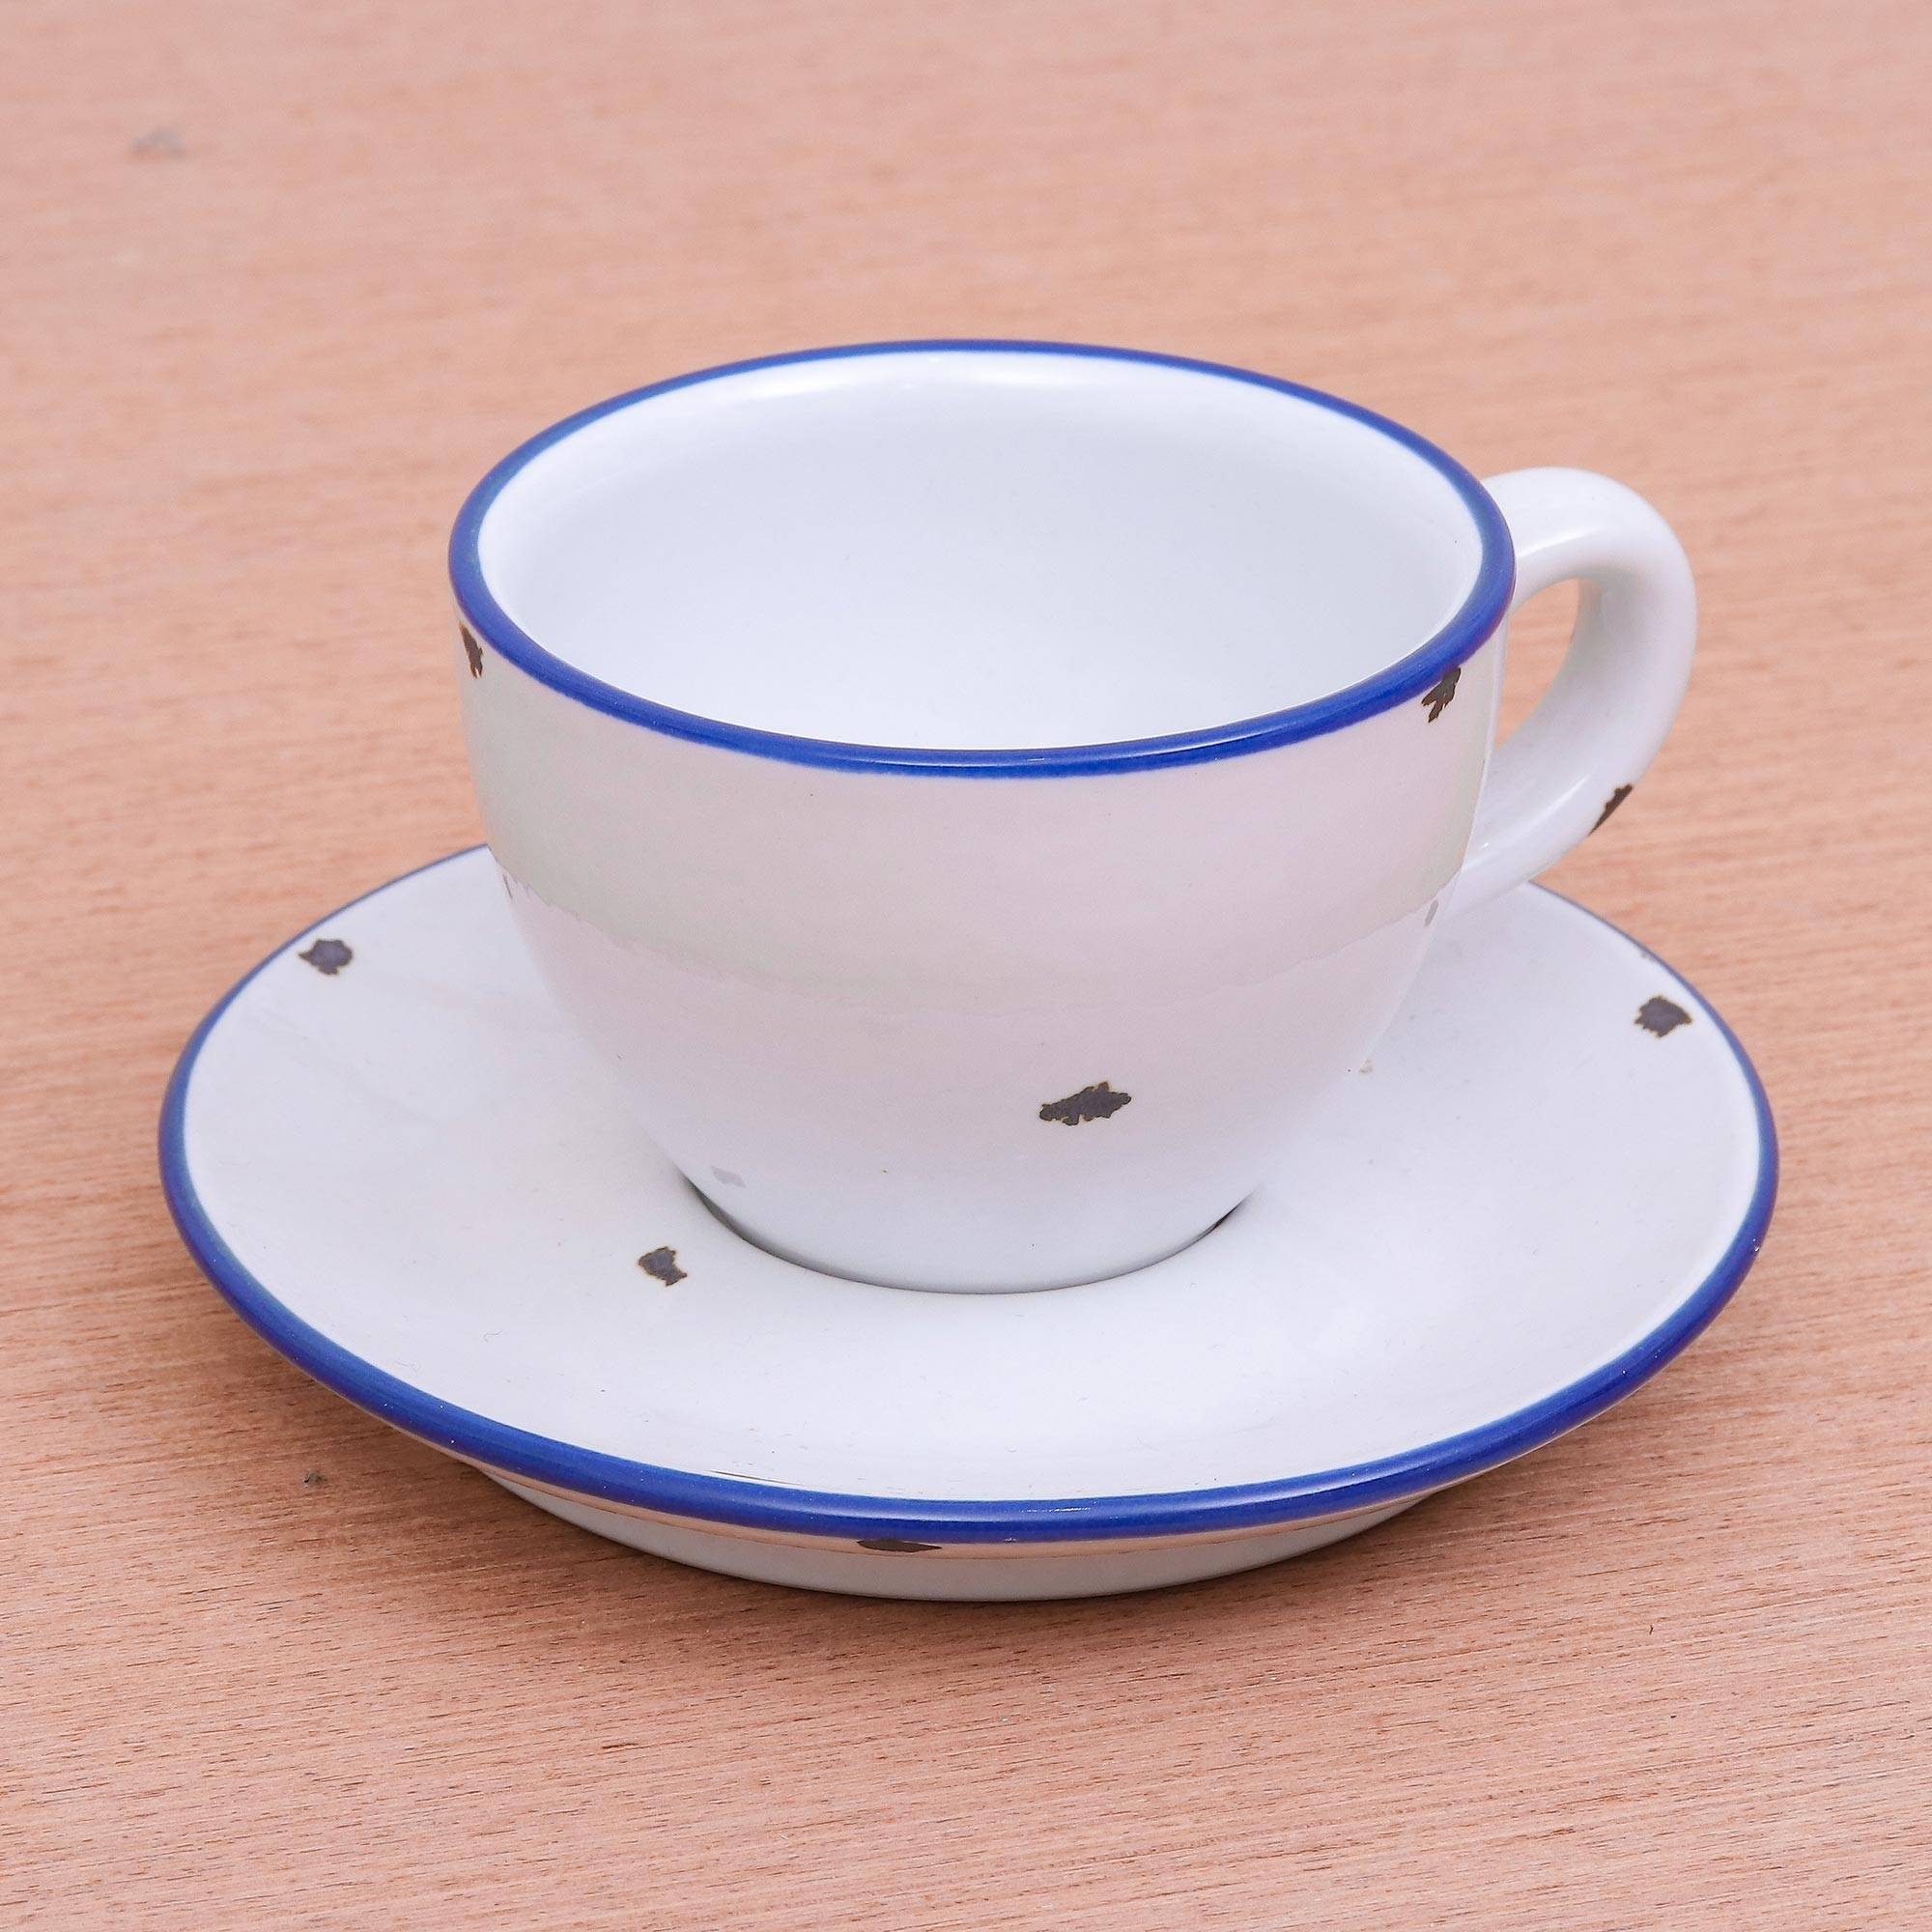 Shabby Chic White Cup And Saucer Set Rustic Charm Novica